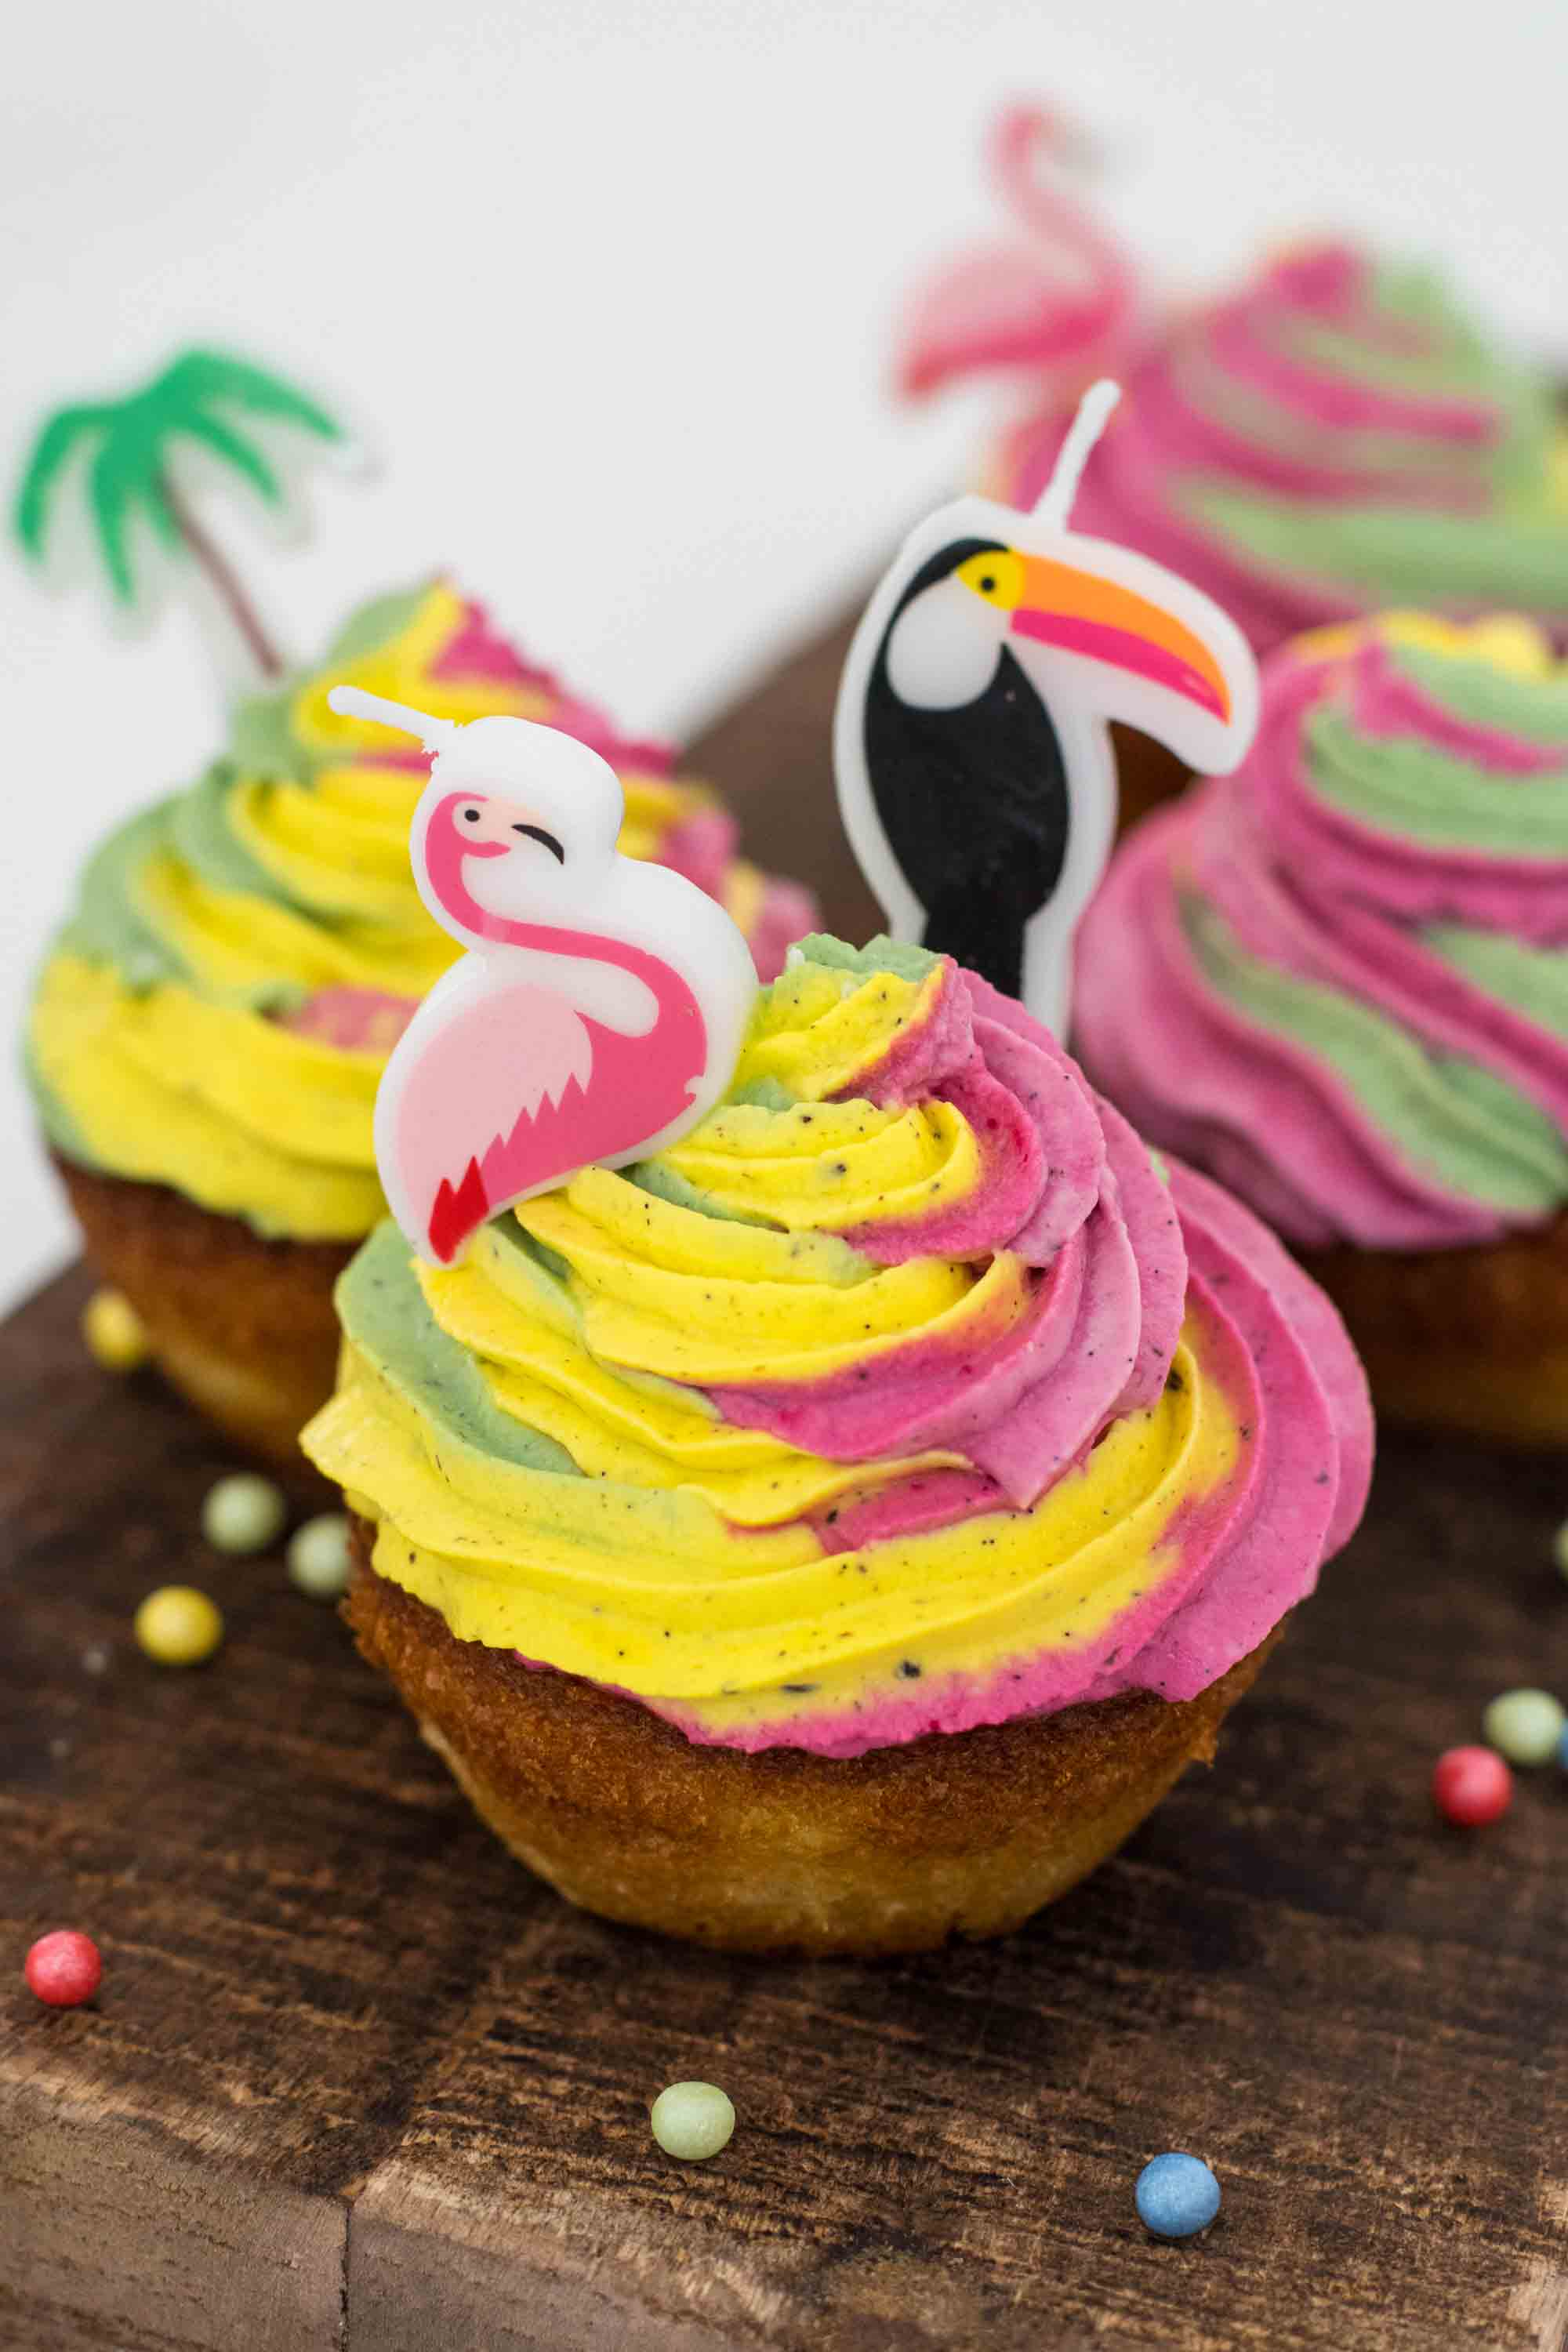 cupcakes tropicaux bougies toucan flamant rose ananas elise dit à table LA PATELIERE